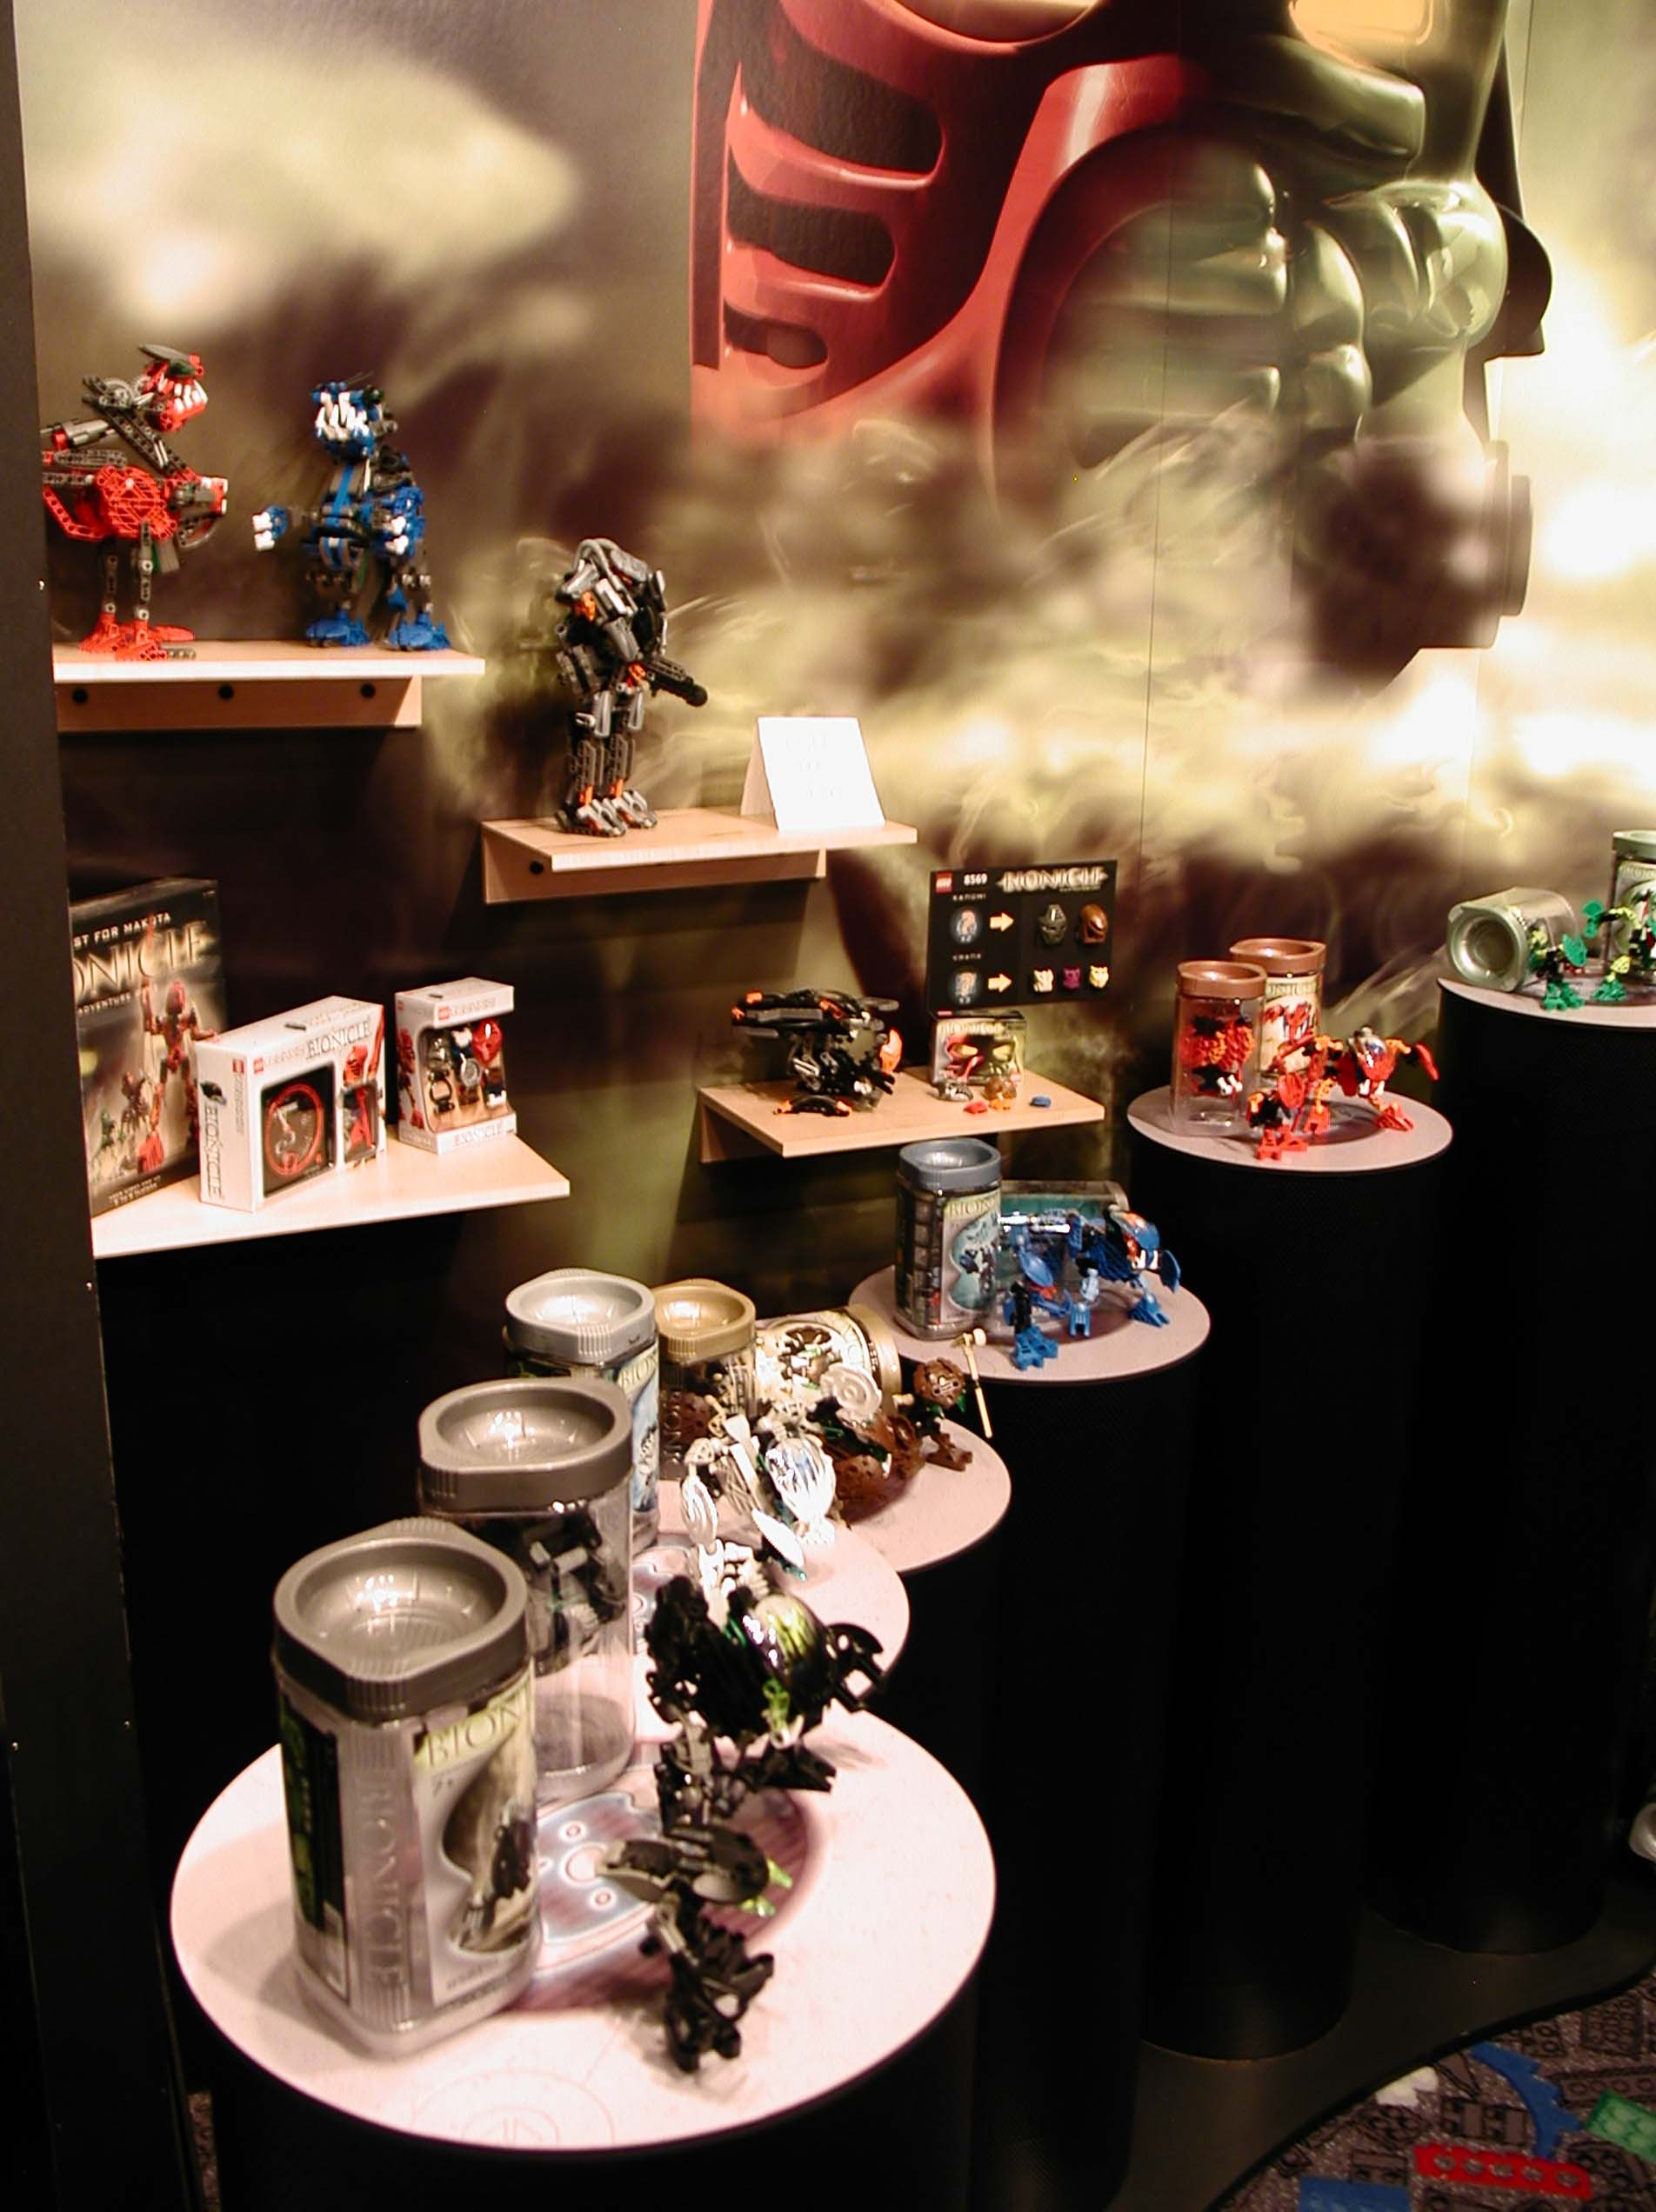 02_toyfair_display_01.jpg